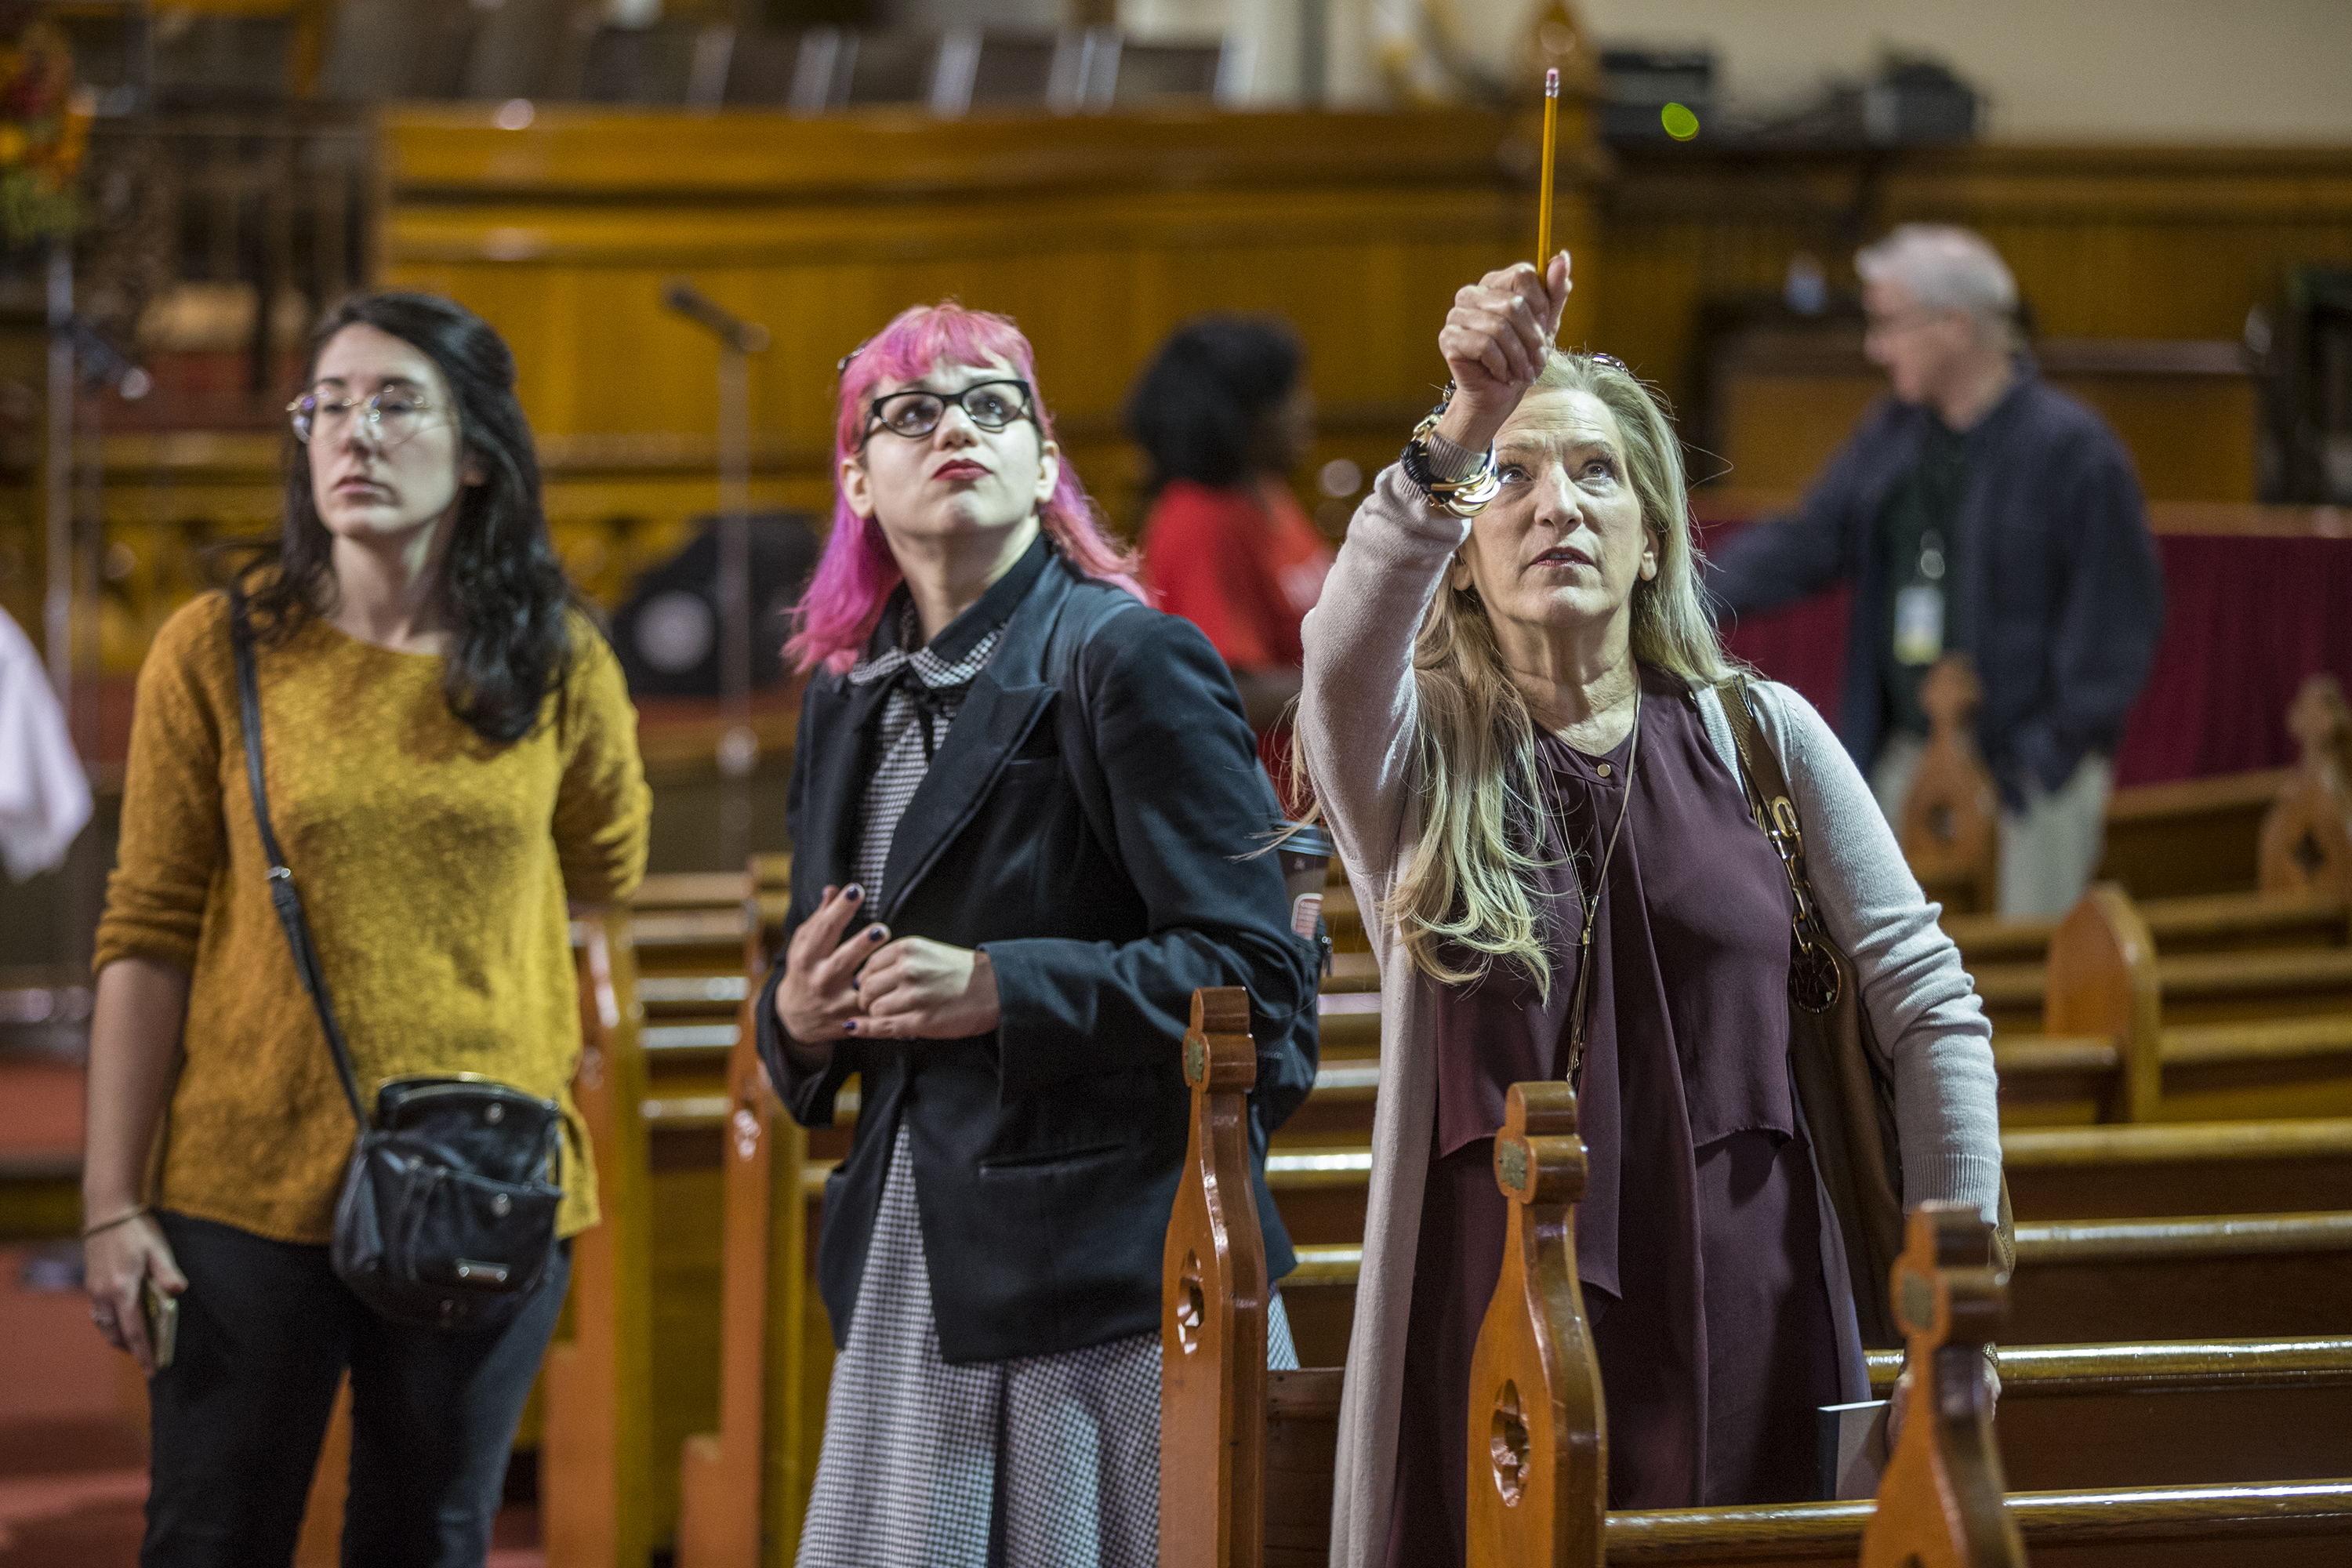 Denise Davis, right, looks up at the stained glass windows in the Tabernacle of Faith Church in the 400 block of Cooper Street that was part of a tour Sunday sponsored by the Rutgers-Camden Center for the Arts and the Mid-Atlantic Center for the Humanities.